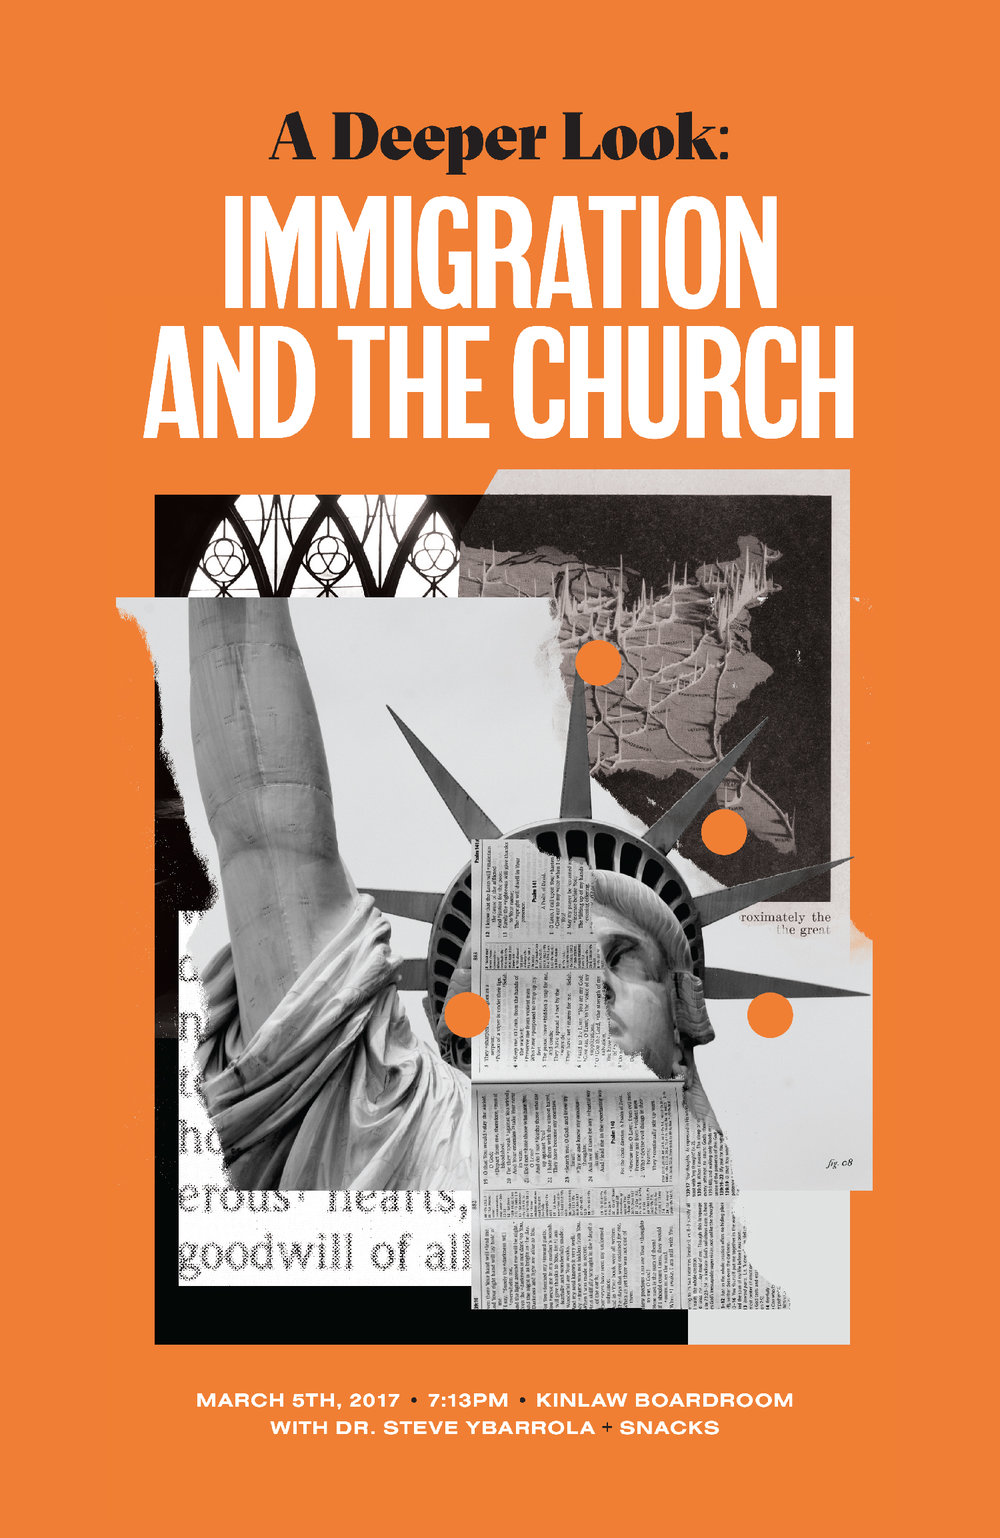 ImmigrationandtheChurch_poster.jpg